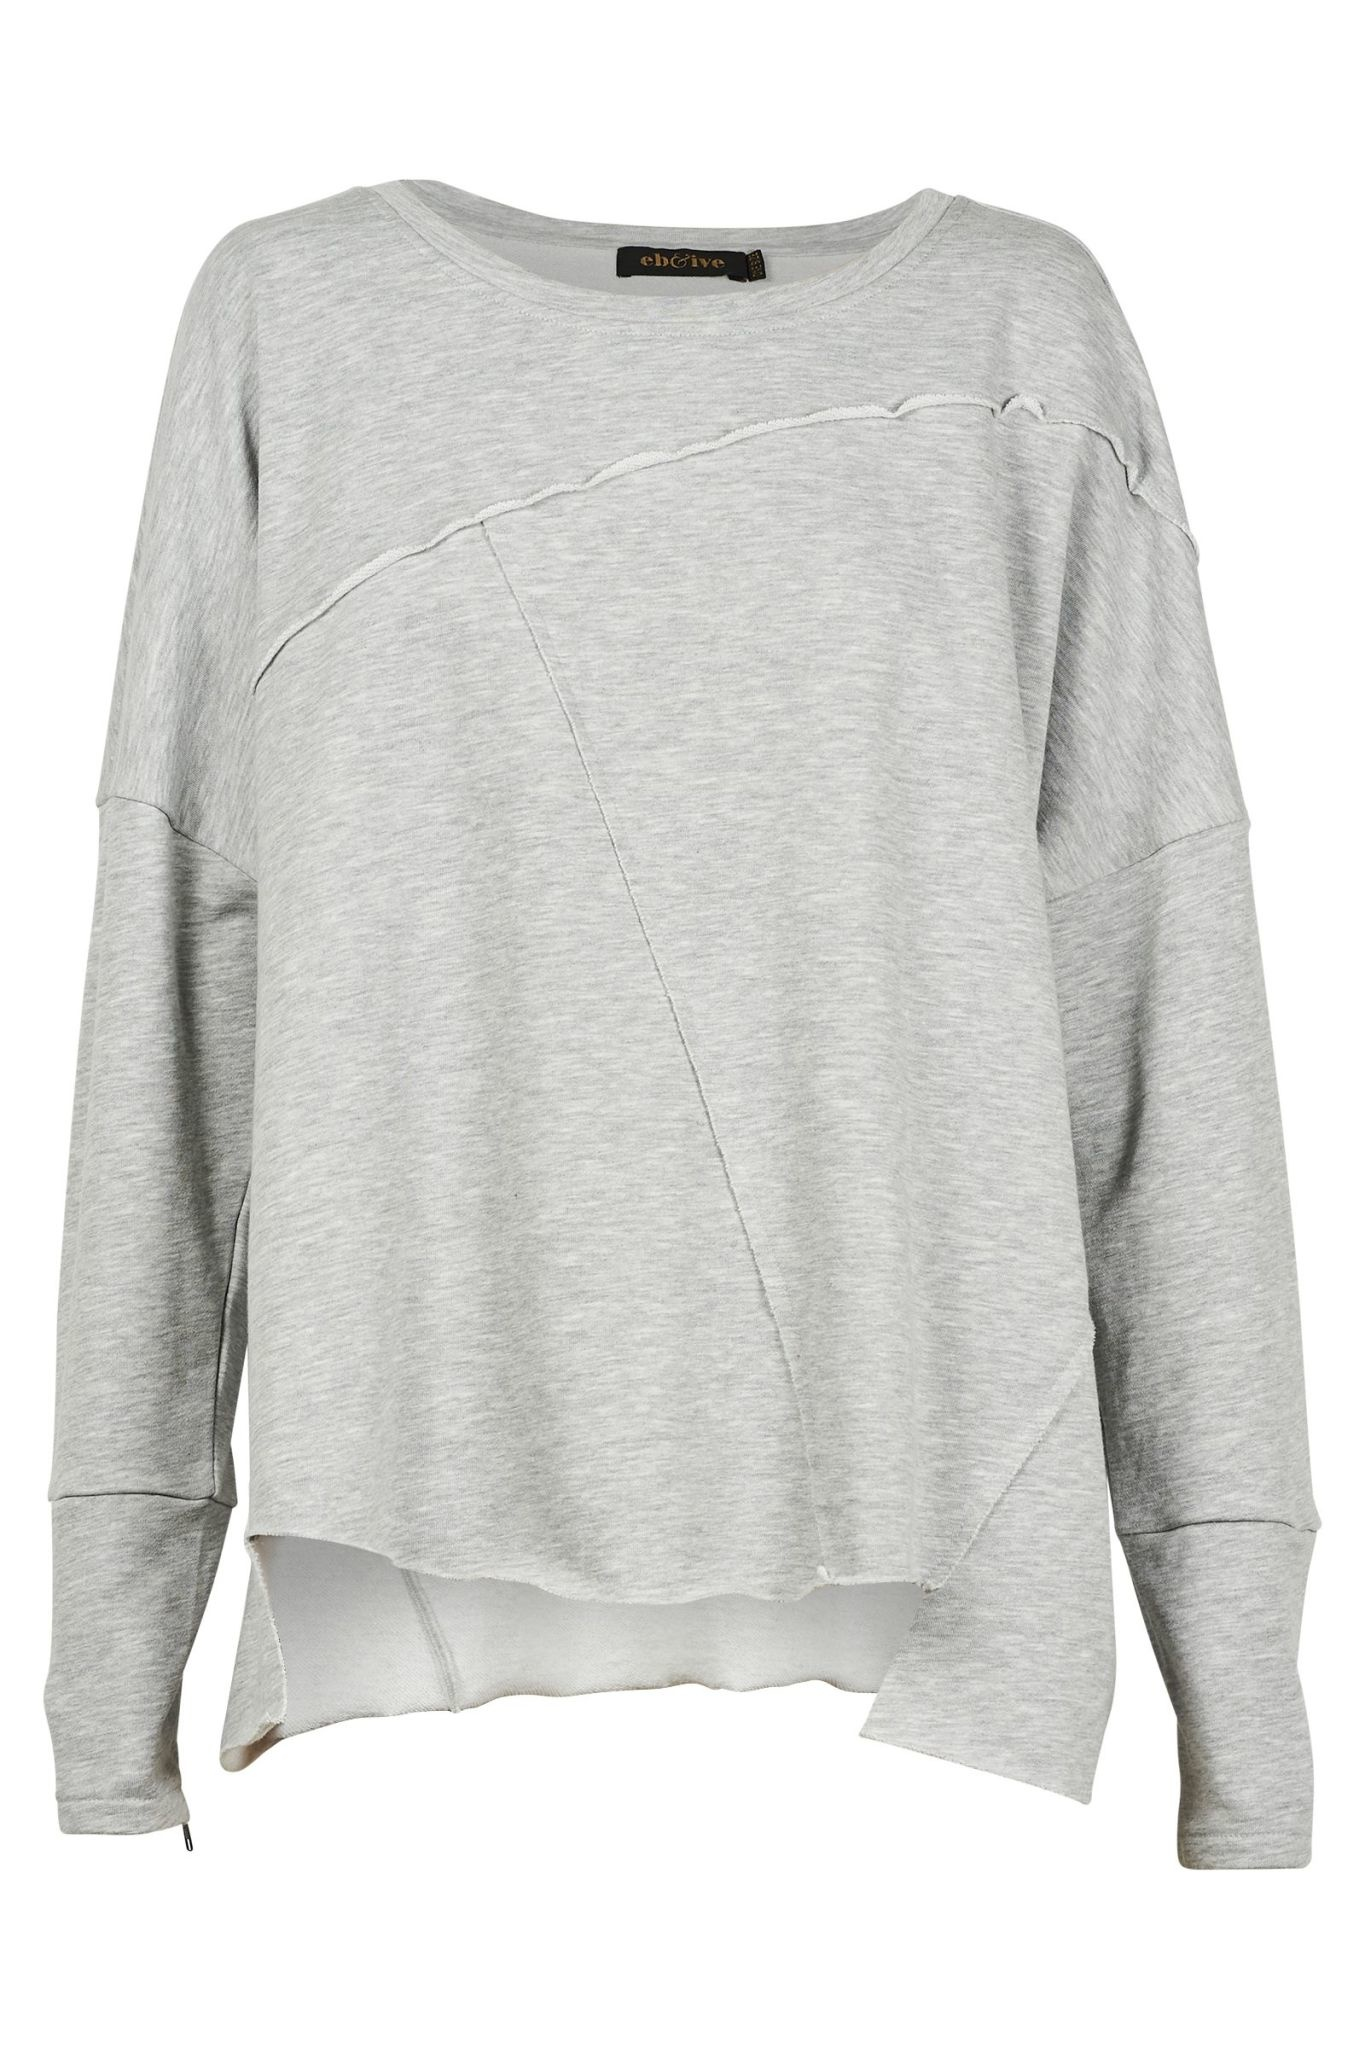 Eb & Ive Arrival Sweat